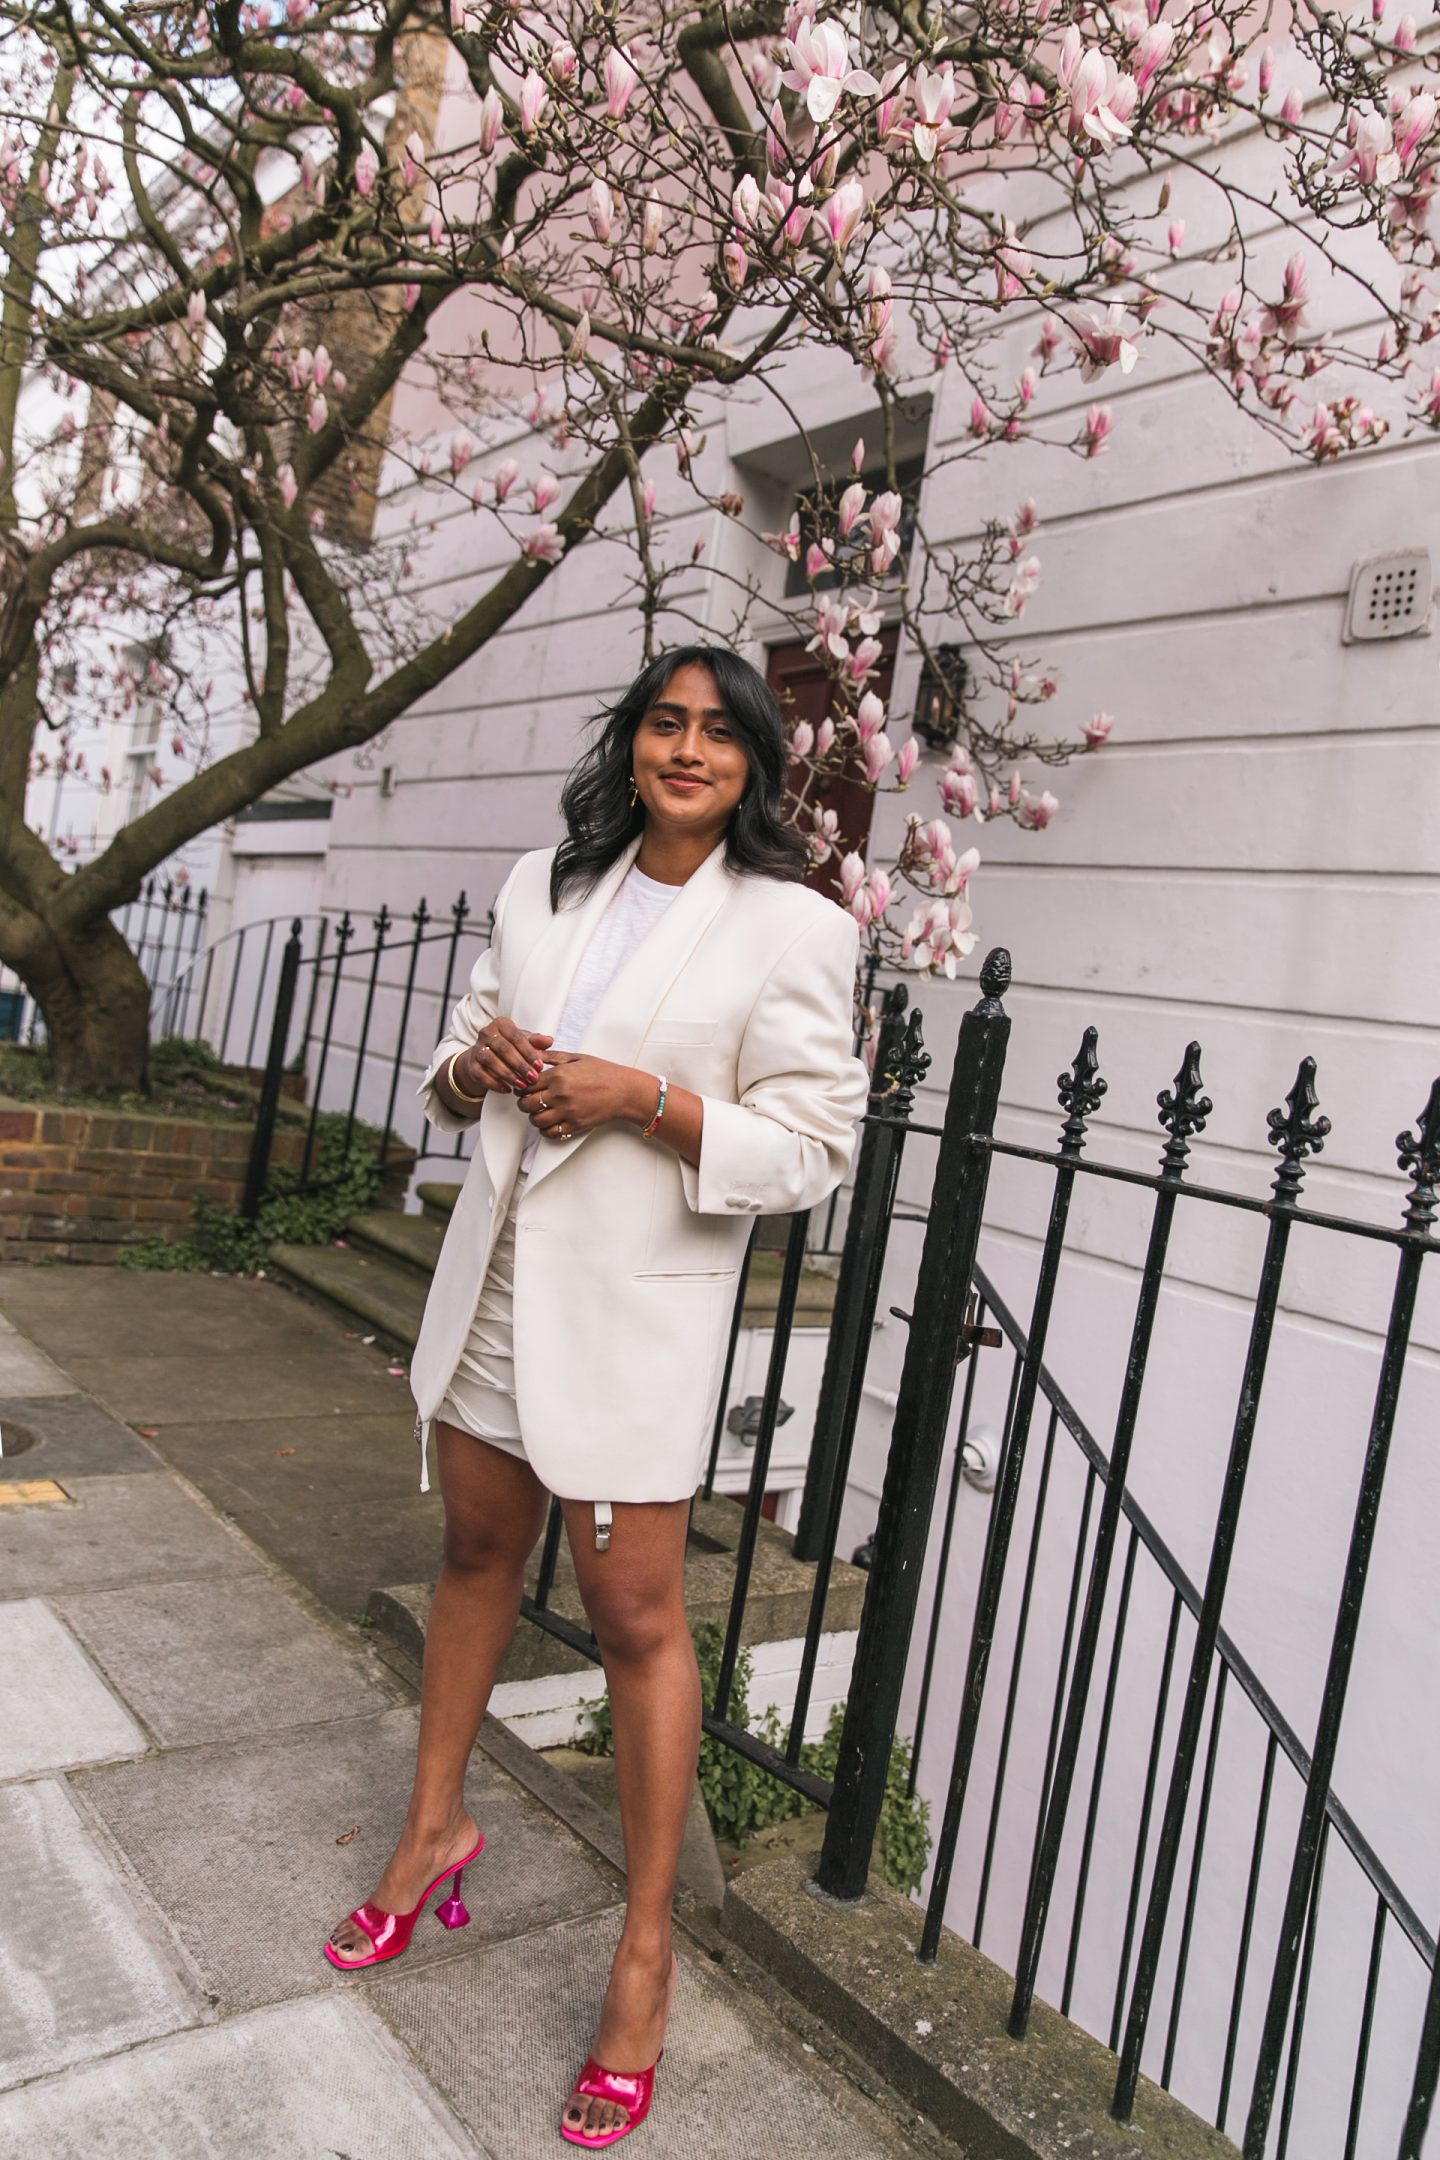 Looking for some Amina Muaddi Shoes – I found some!